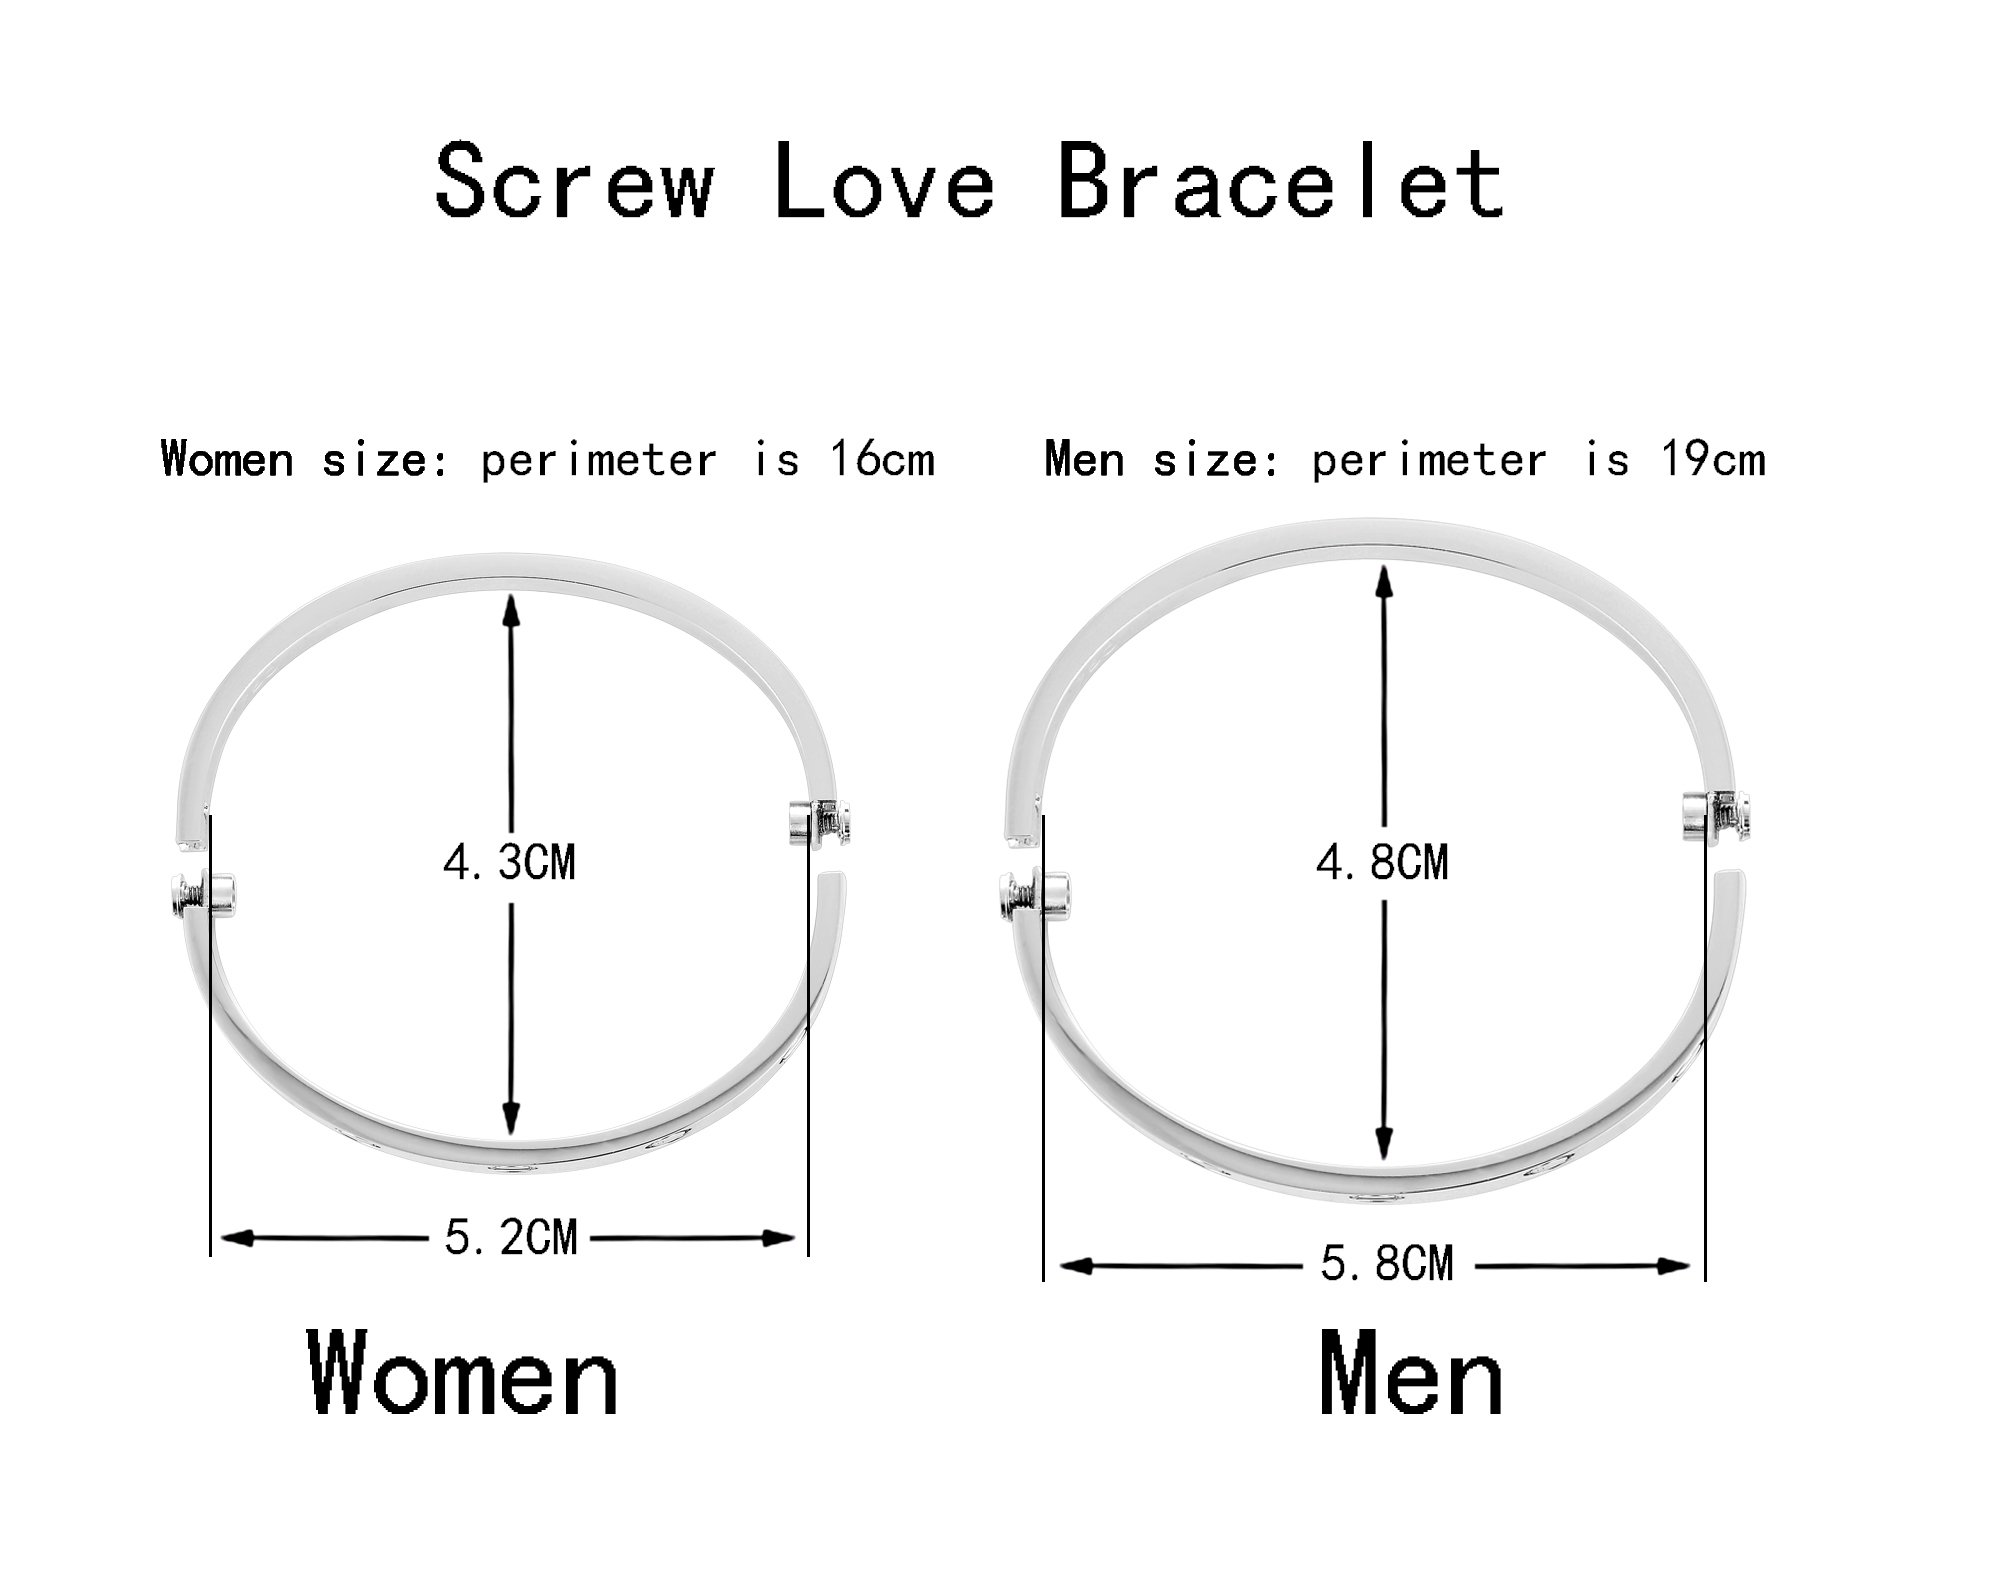 Z.RACLE Love Bangle Bracelet Stainless Steel with Screw - Best Gift for Love - 6.3IN White Gold by Z.RACLE (Image #4)